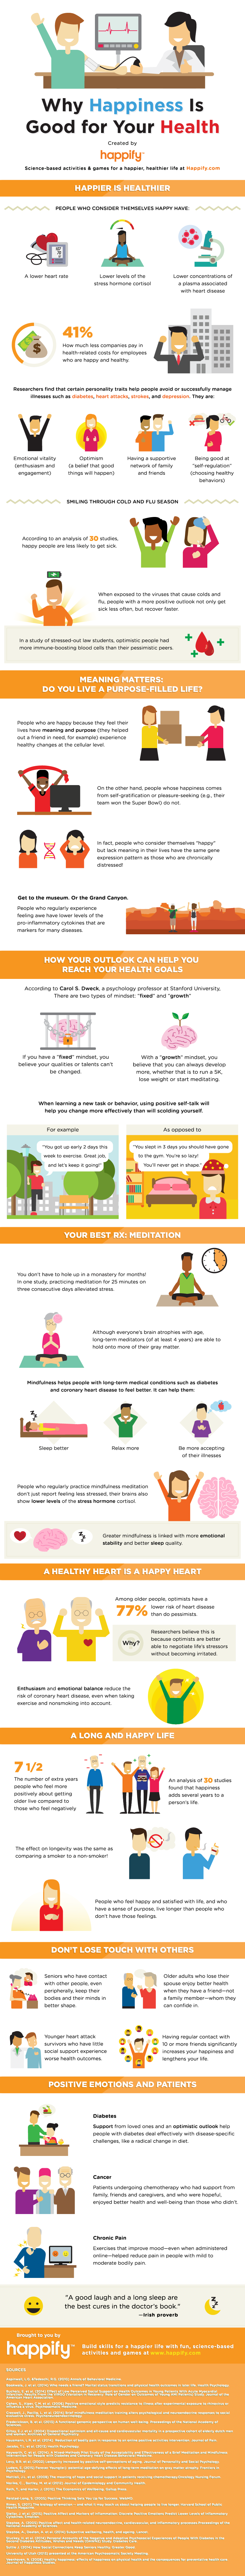 16 Health Benefits of Happiness Infographic